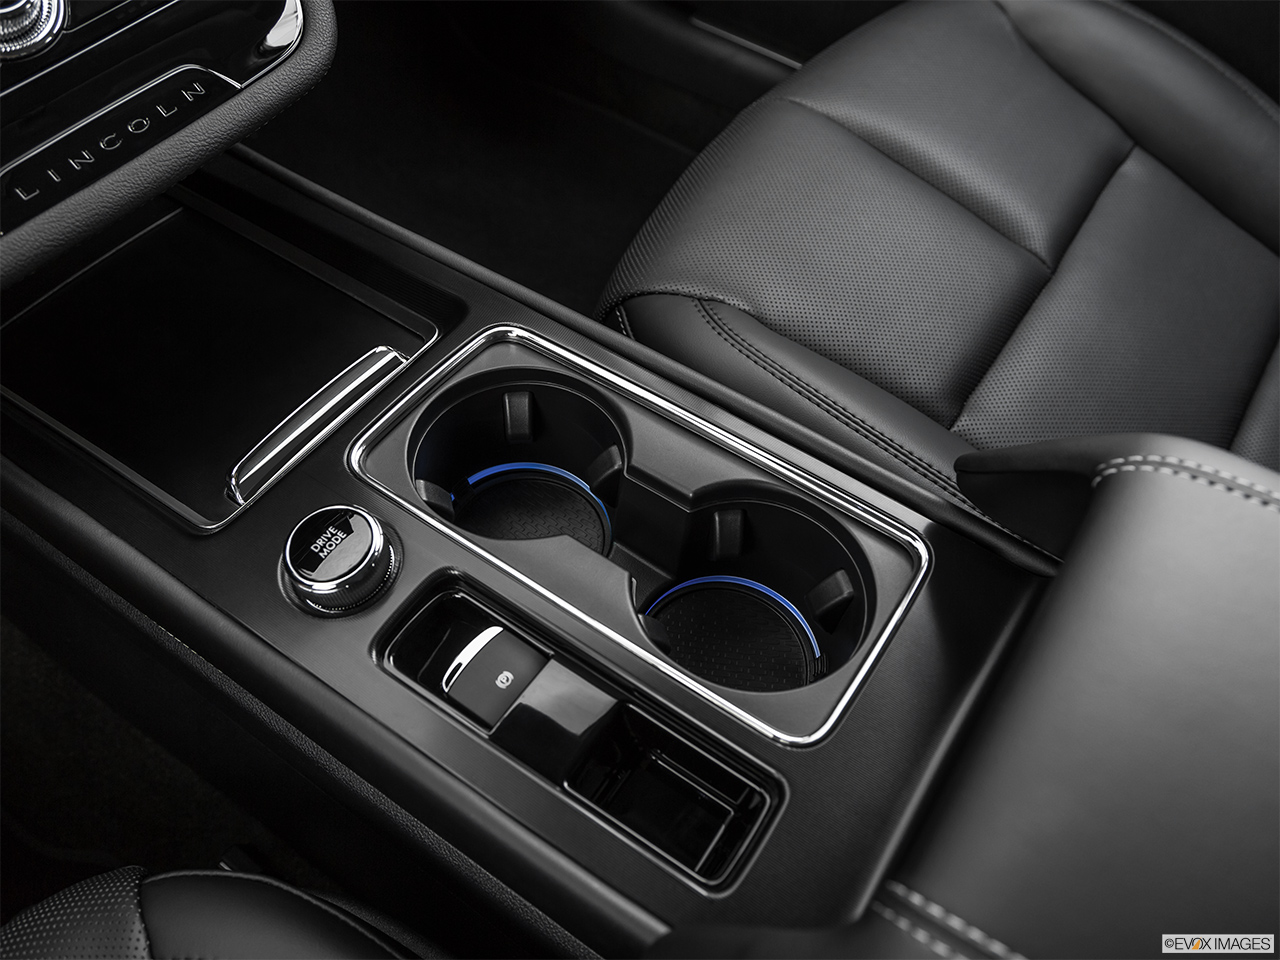 2020 Lincoln Corsair Standard Cup holders.